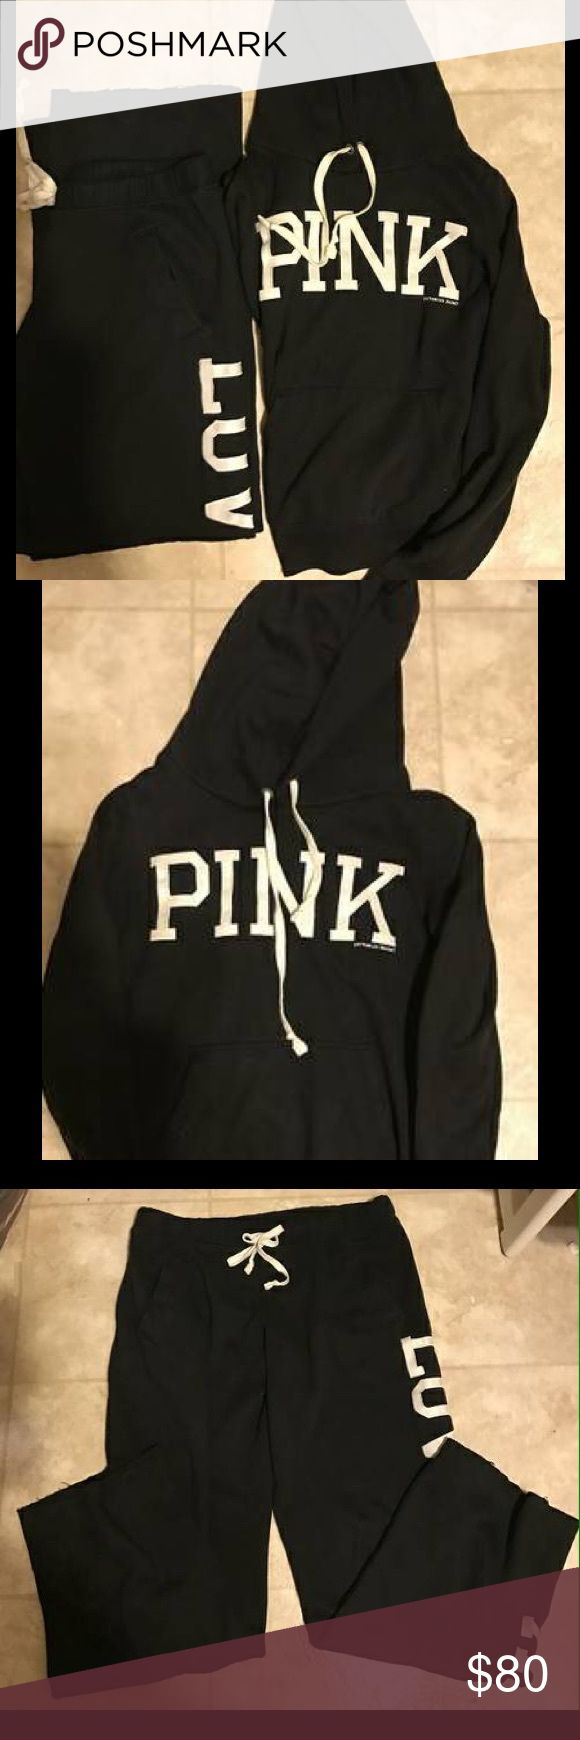 Womans Pink Victoria Secret Sweatshirt/Sweatpants They are both a size medium, color is black and white, both are in mint condition, no holes or stains,both for 80 PINK Victoria's Secret Tops Sweatshirts & Hoodies